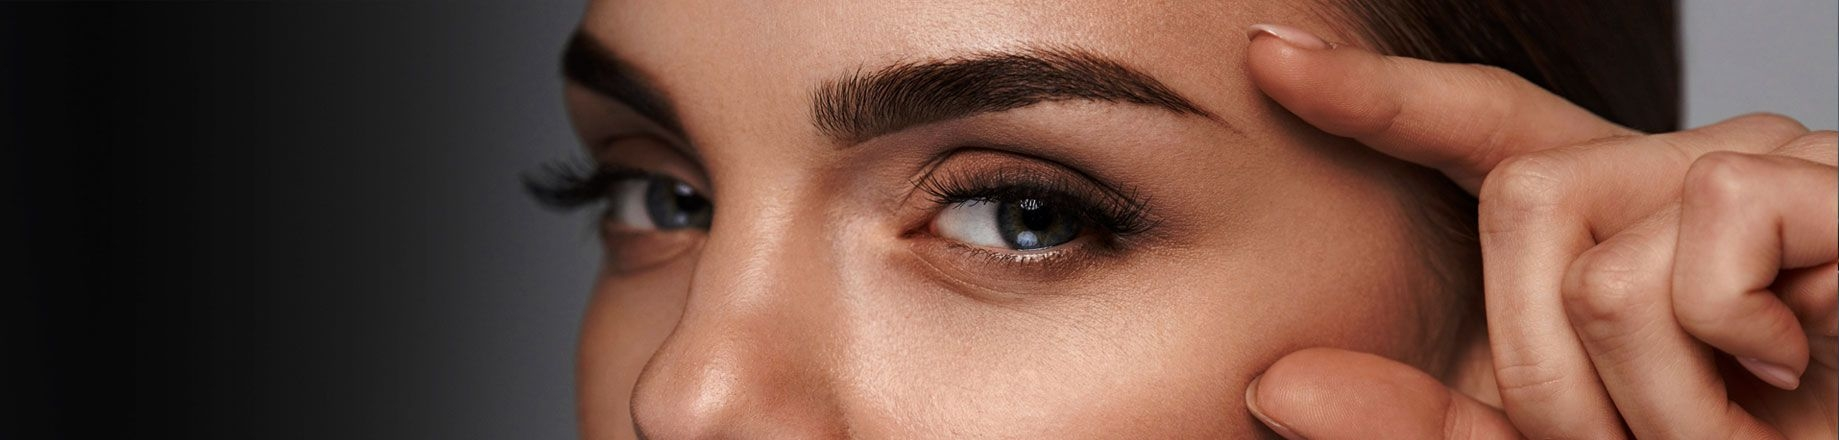 Brow Lift Compensation